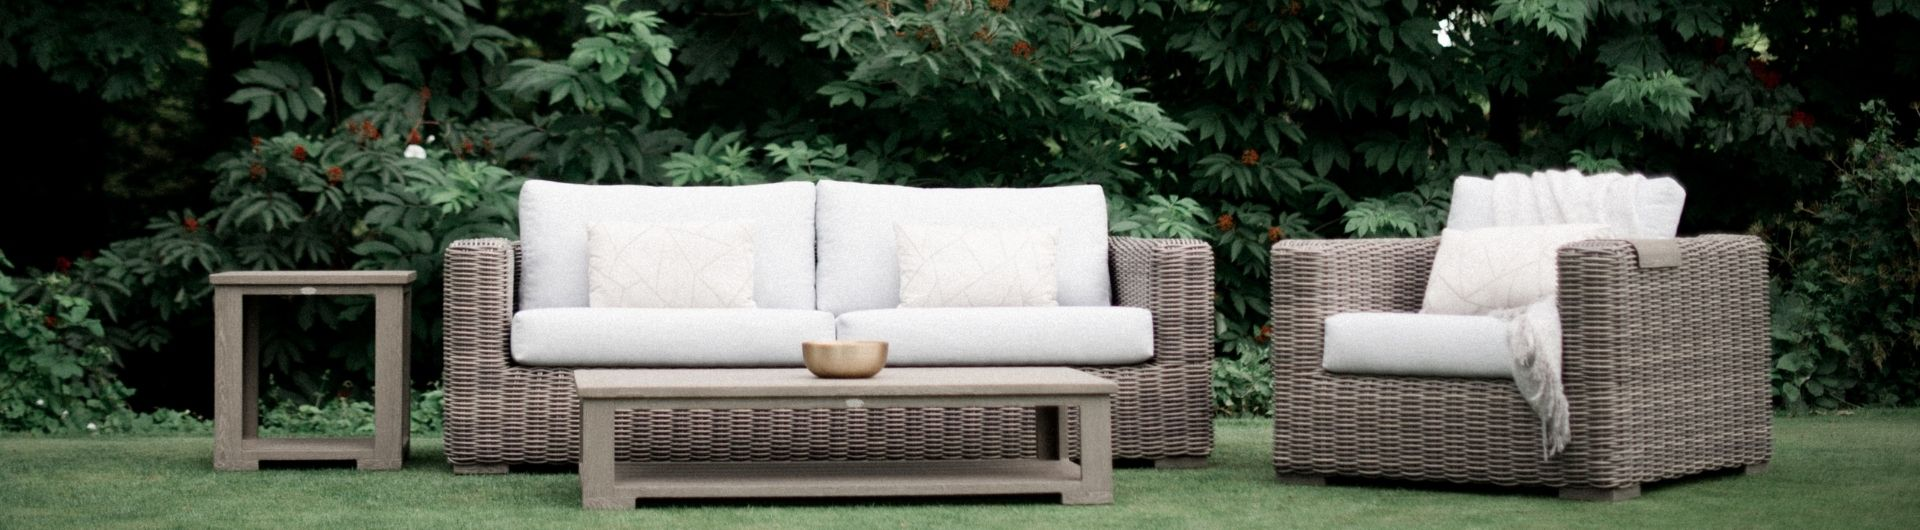 Cubo Lounging Collection